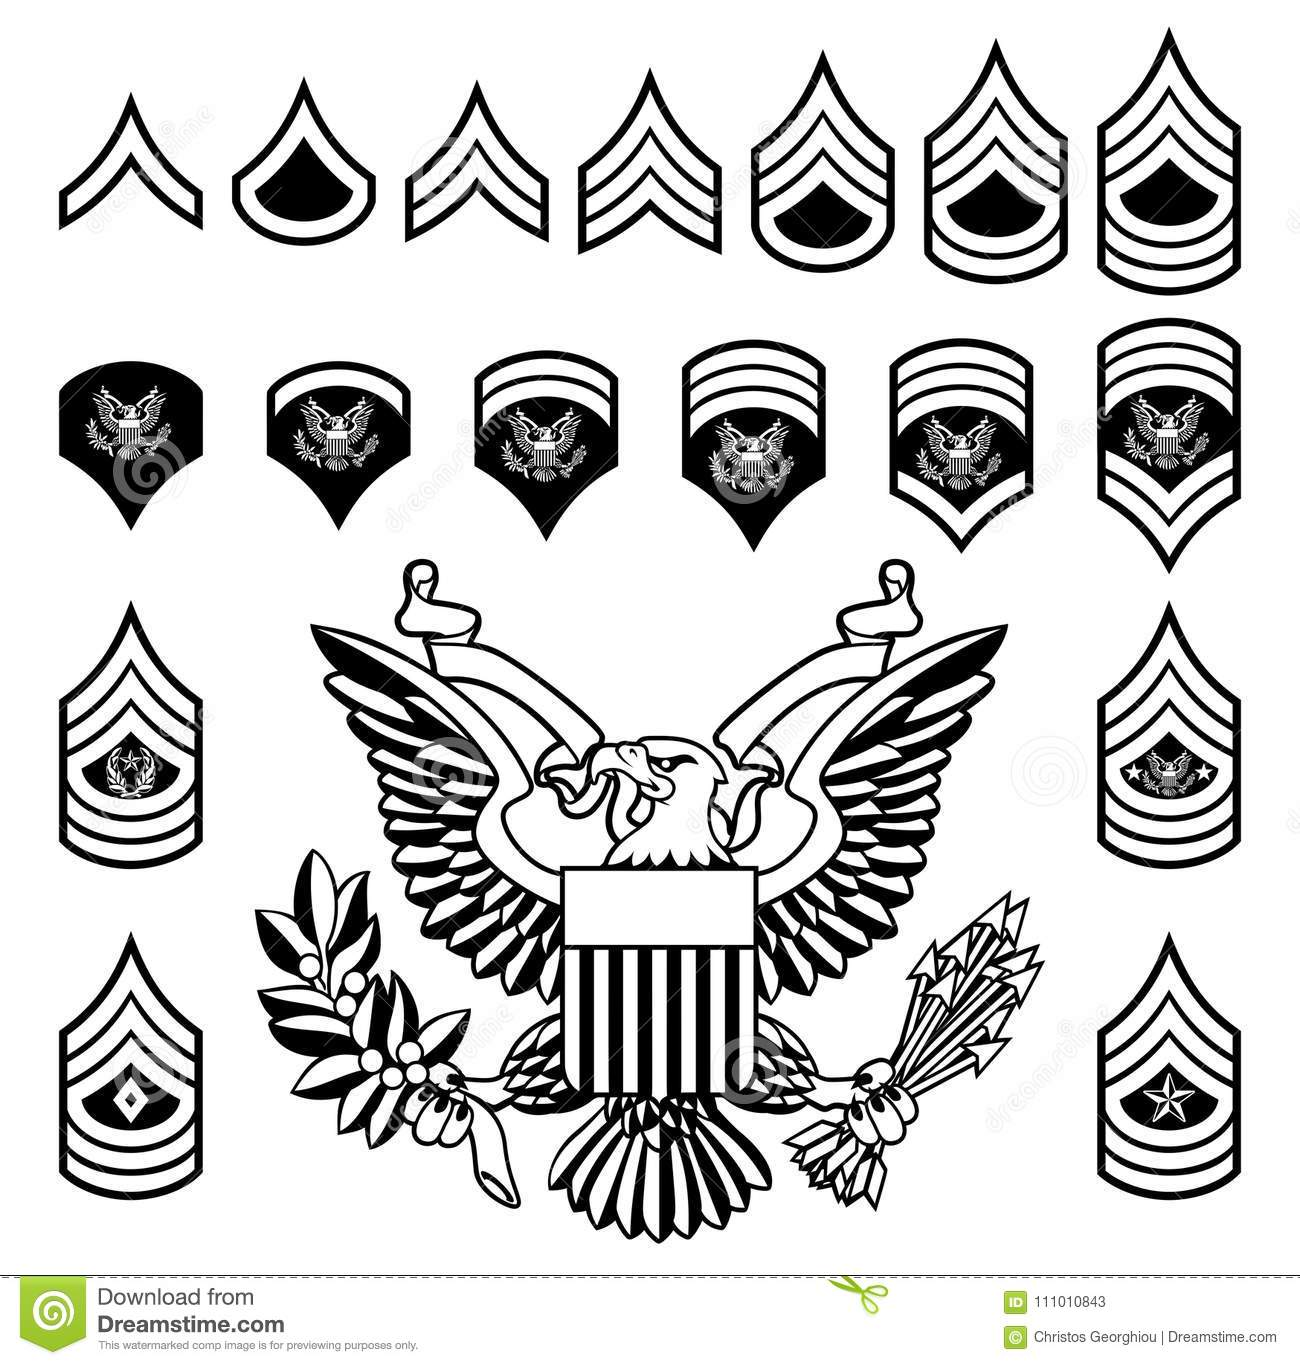 Army military rank insignia stock vector illustration of logo army military rank insignia buycottarizona Image collections